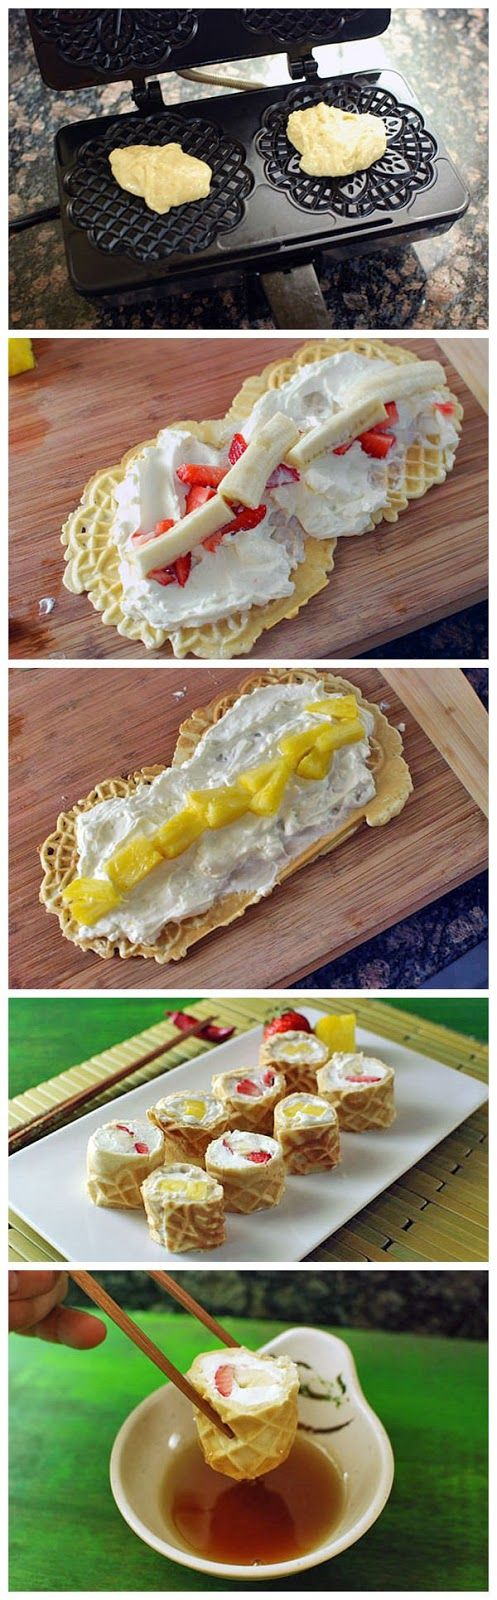 Waffle Breakfast Sushi stuffed with fruit and a cream cheese filling!